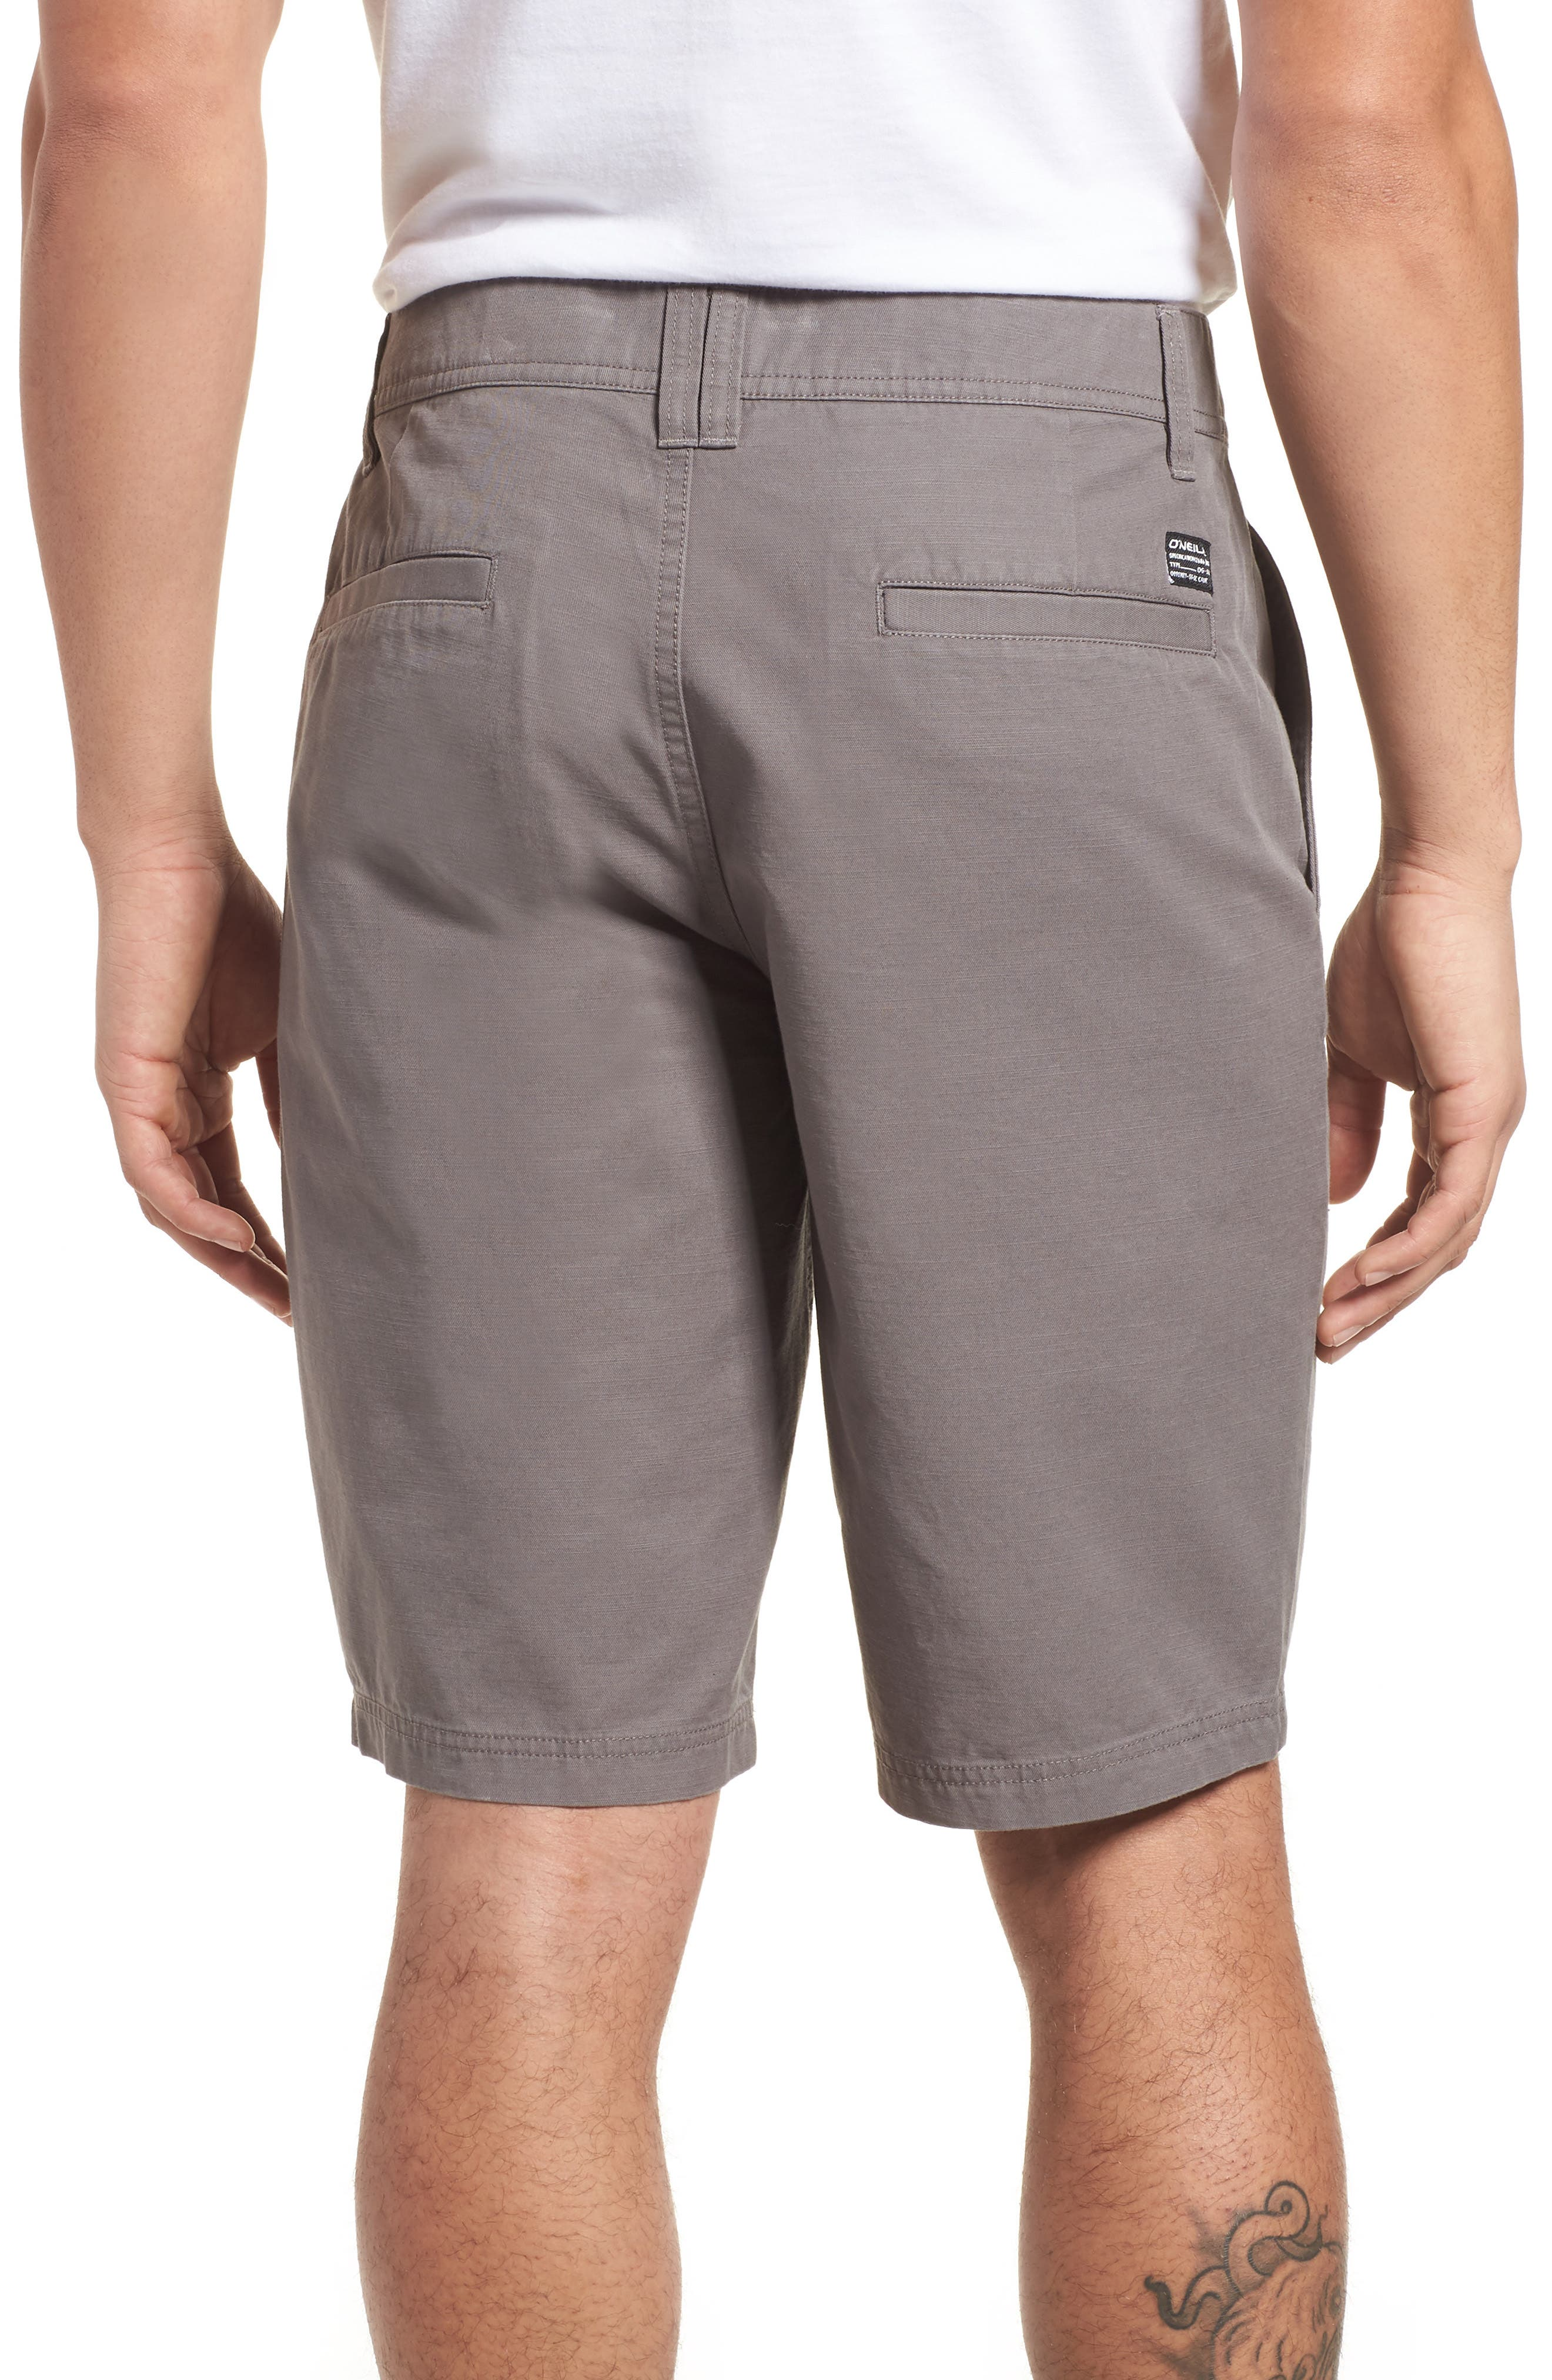 Jay Chino Shorts,                             Alternate thumbnail 2, color,                             Grey